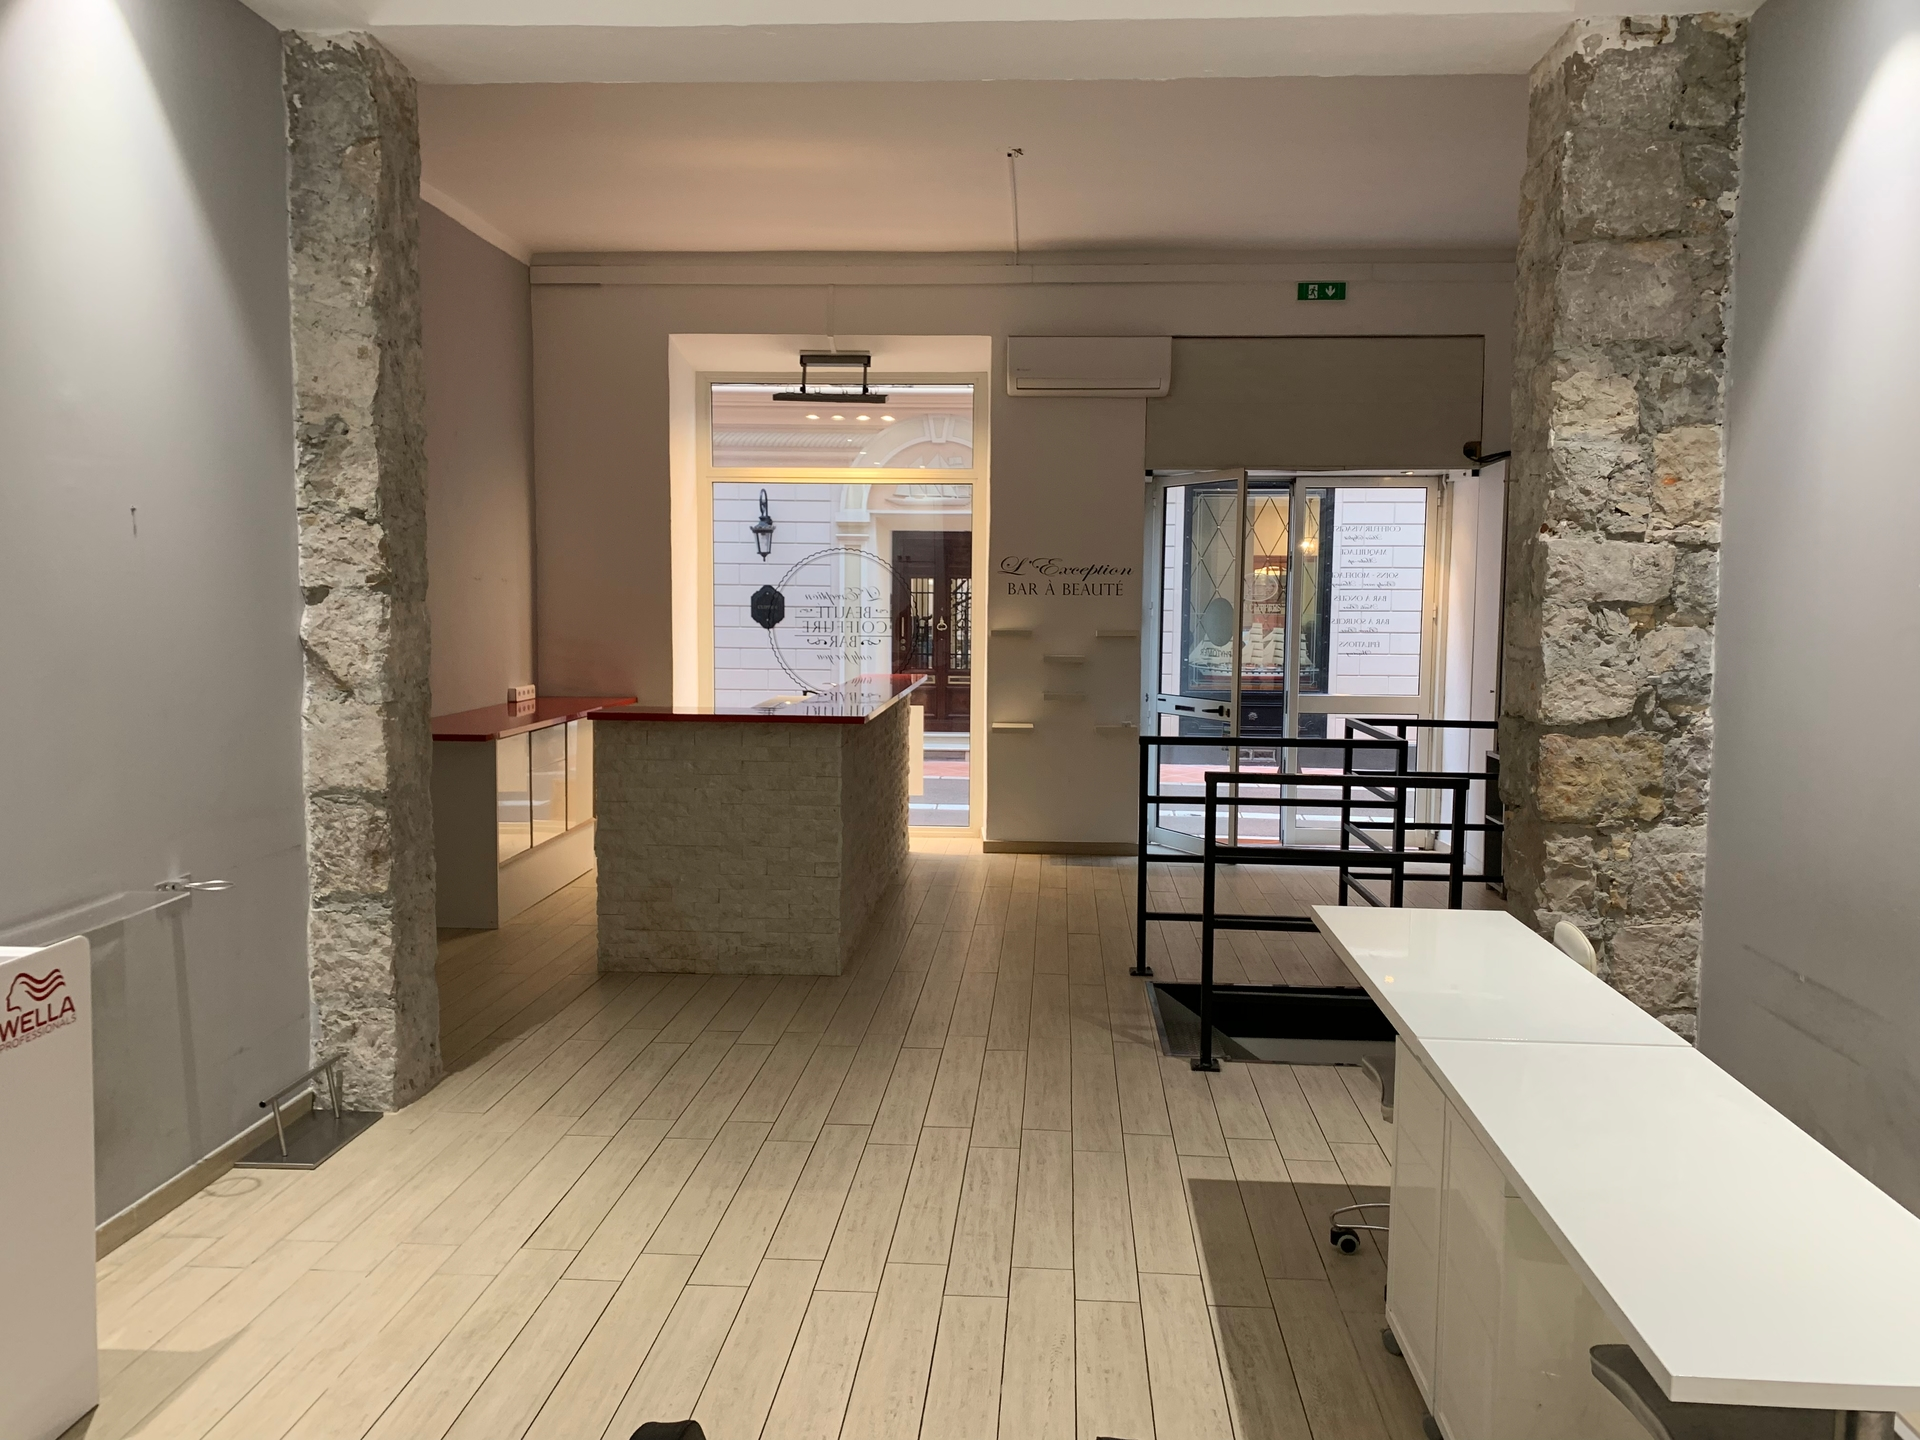 xX Premise ideally located Xx - Offices for sale in Monaco